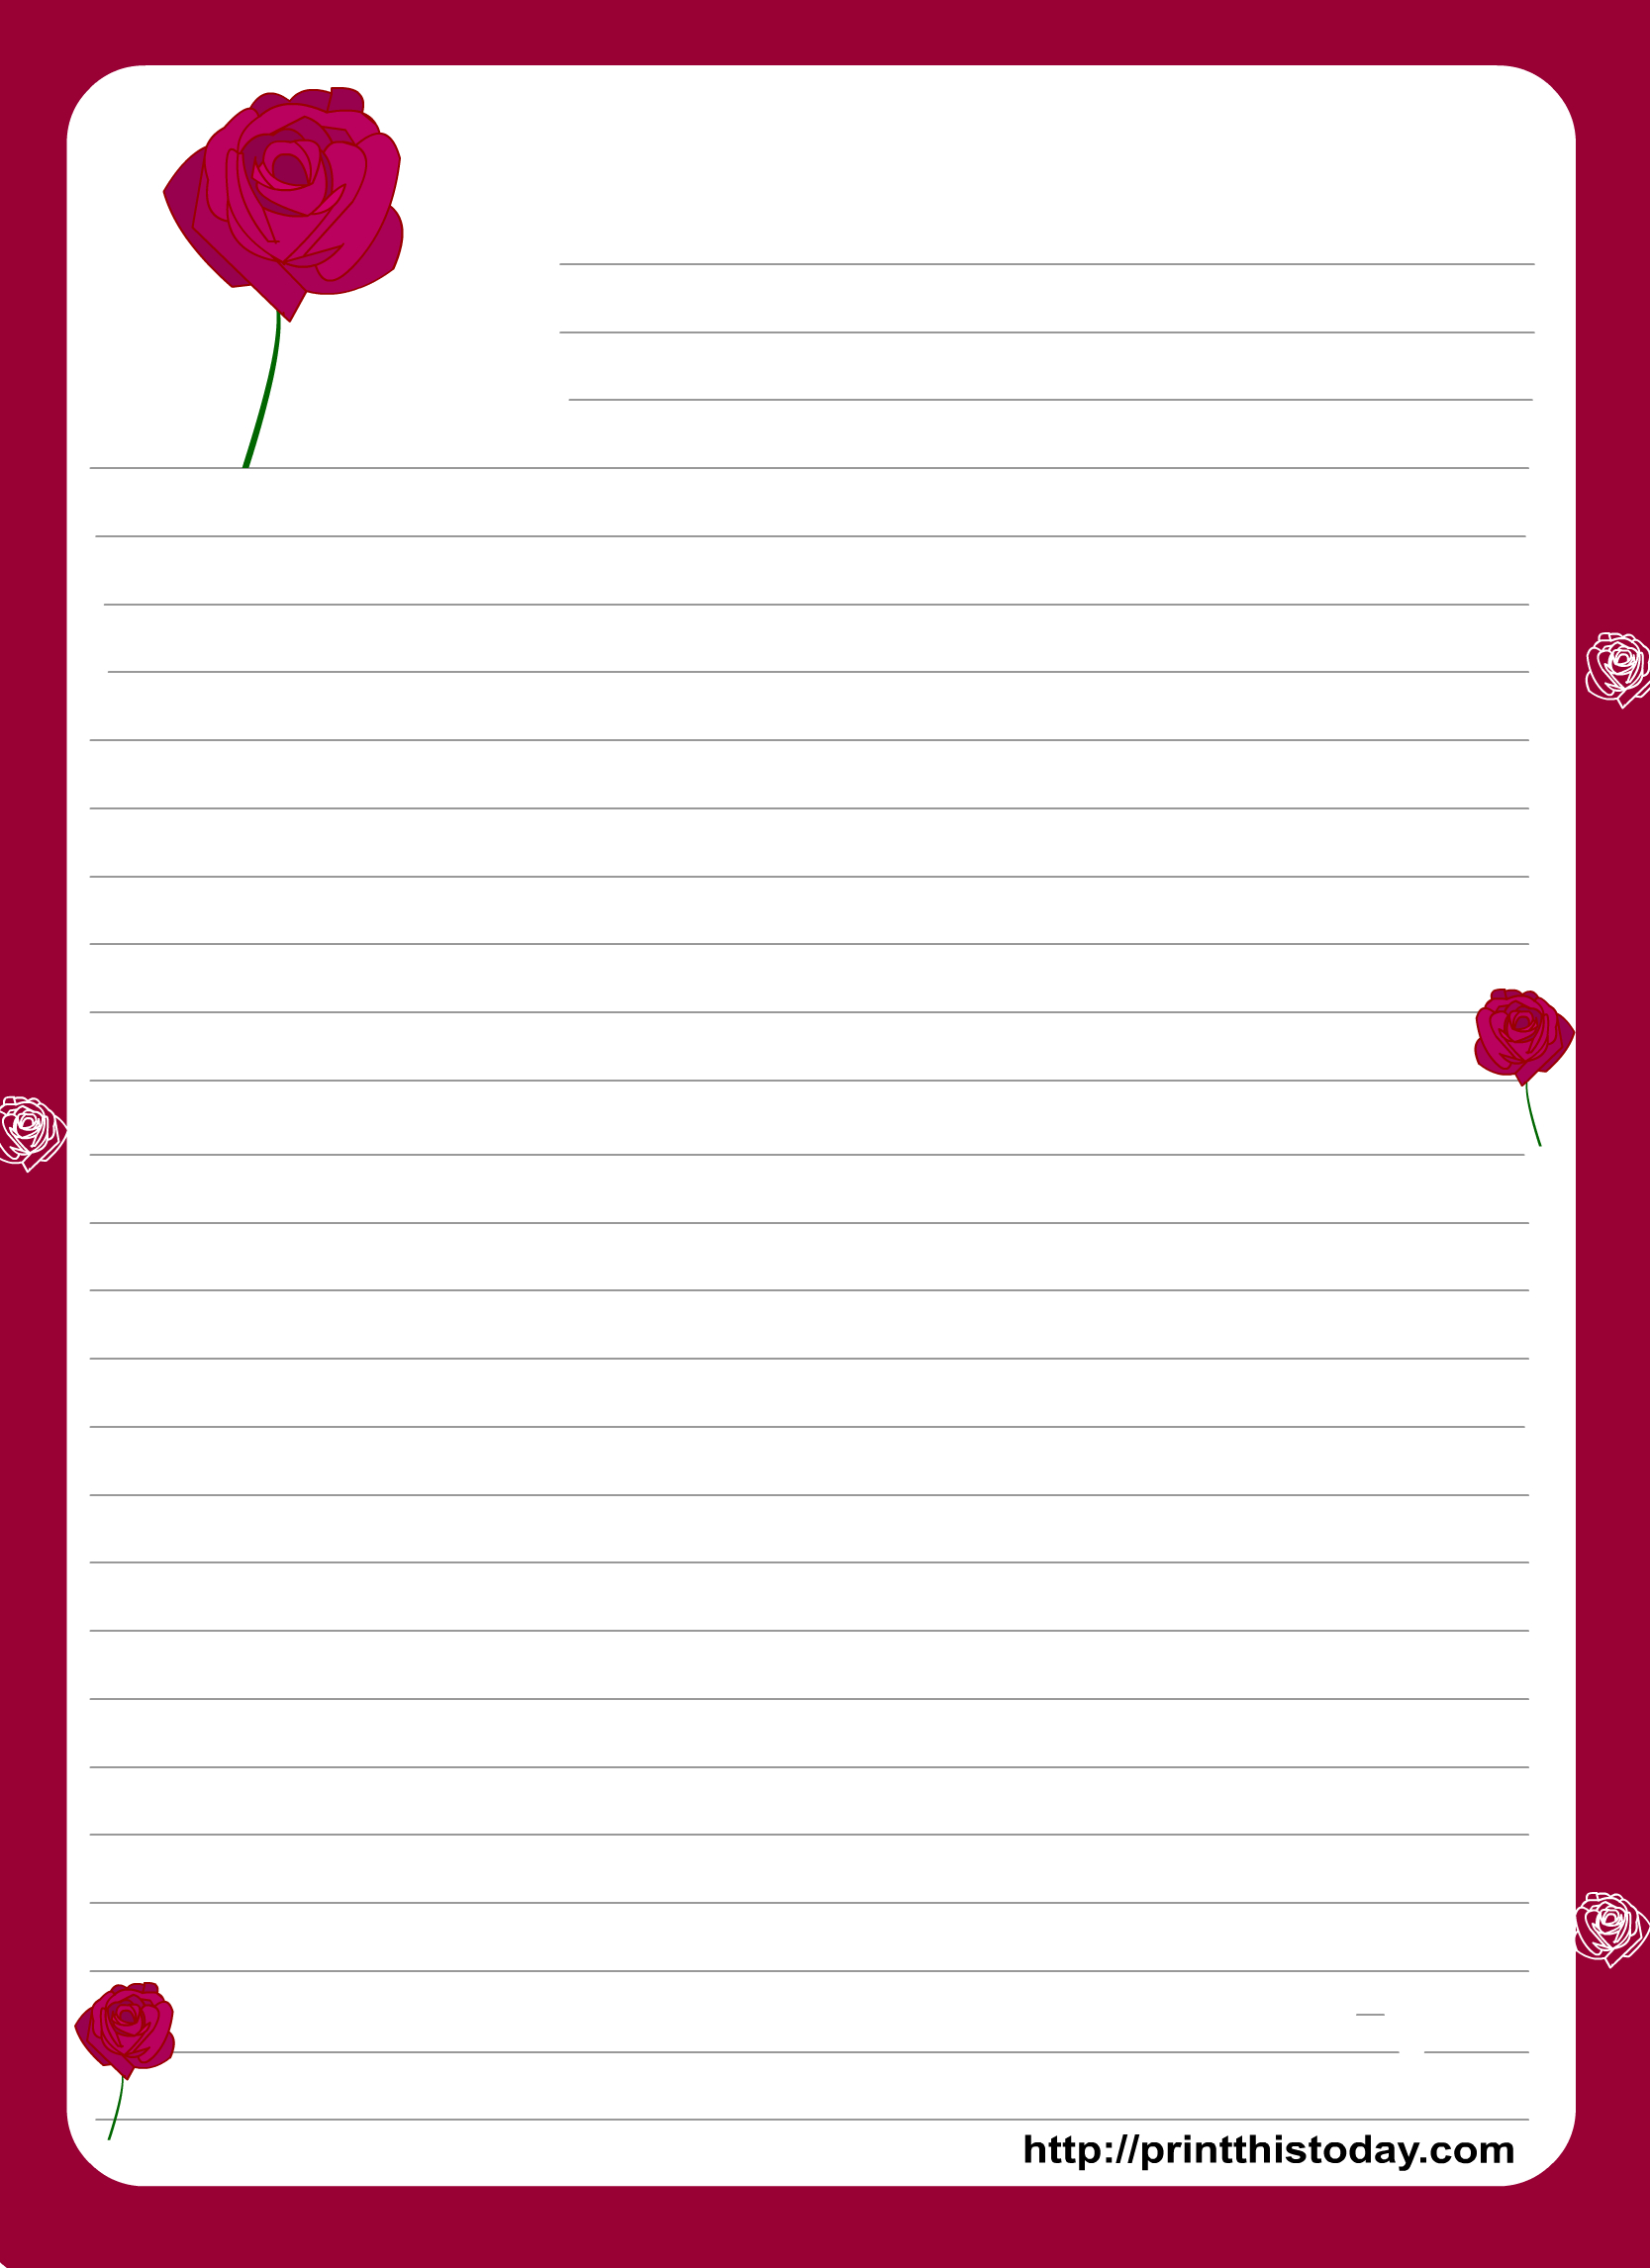 A Cute Letter Writing Paper Decorated With Cute Hearts Is Great To With Template For Love Letter